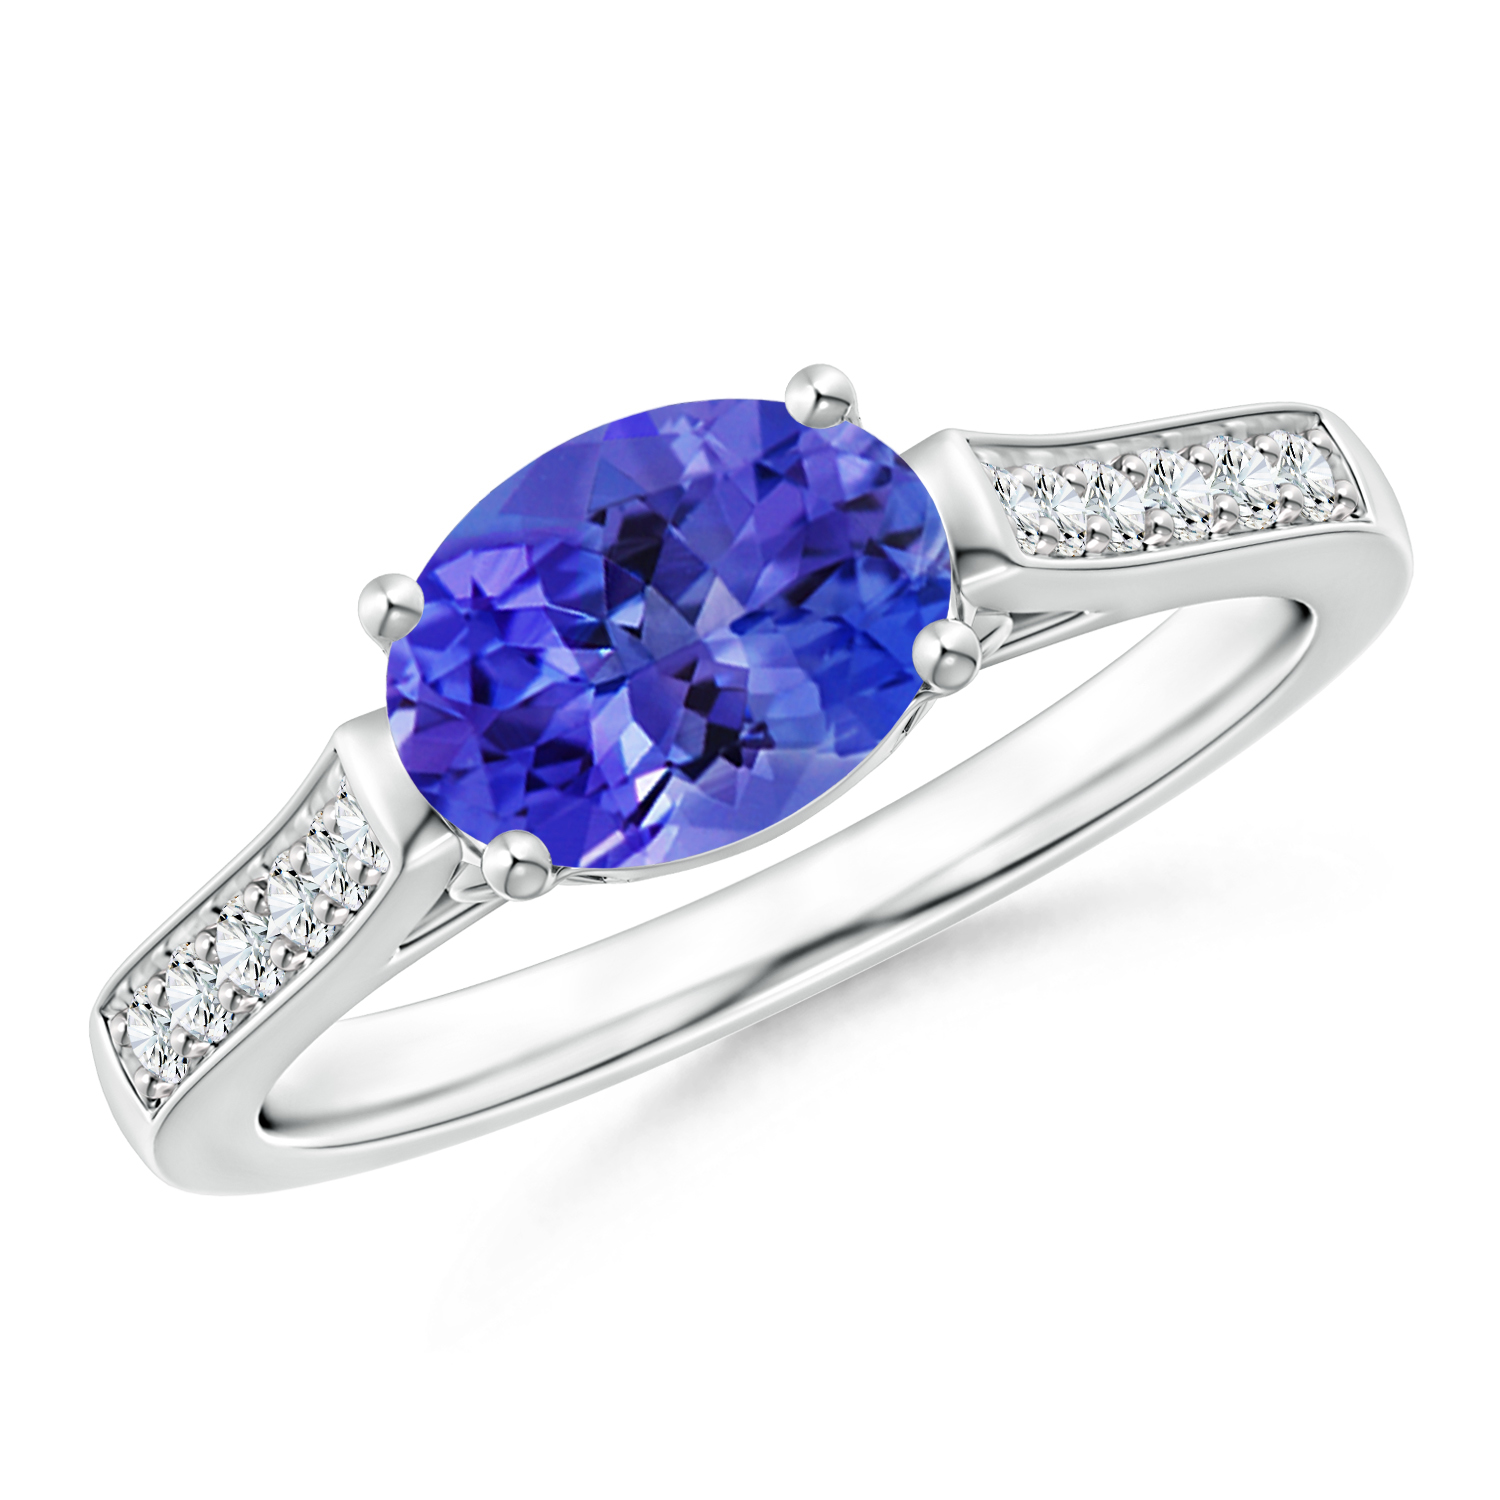 East West Set Oval Tanzanite Solitaire Ring with Diamond Accents - Angara.com